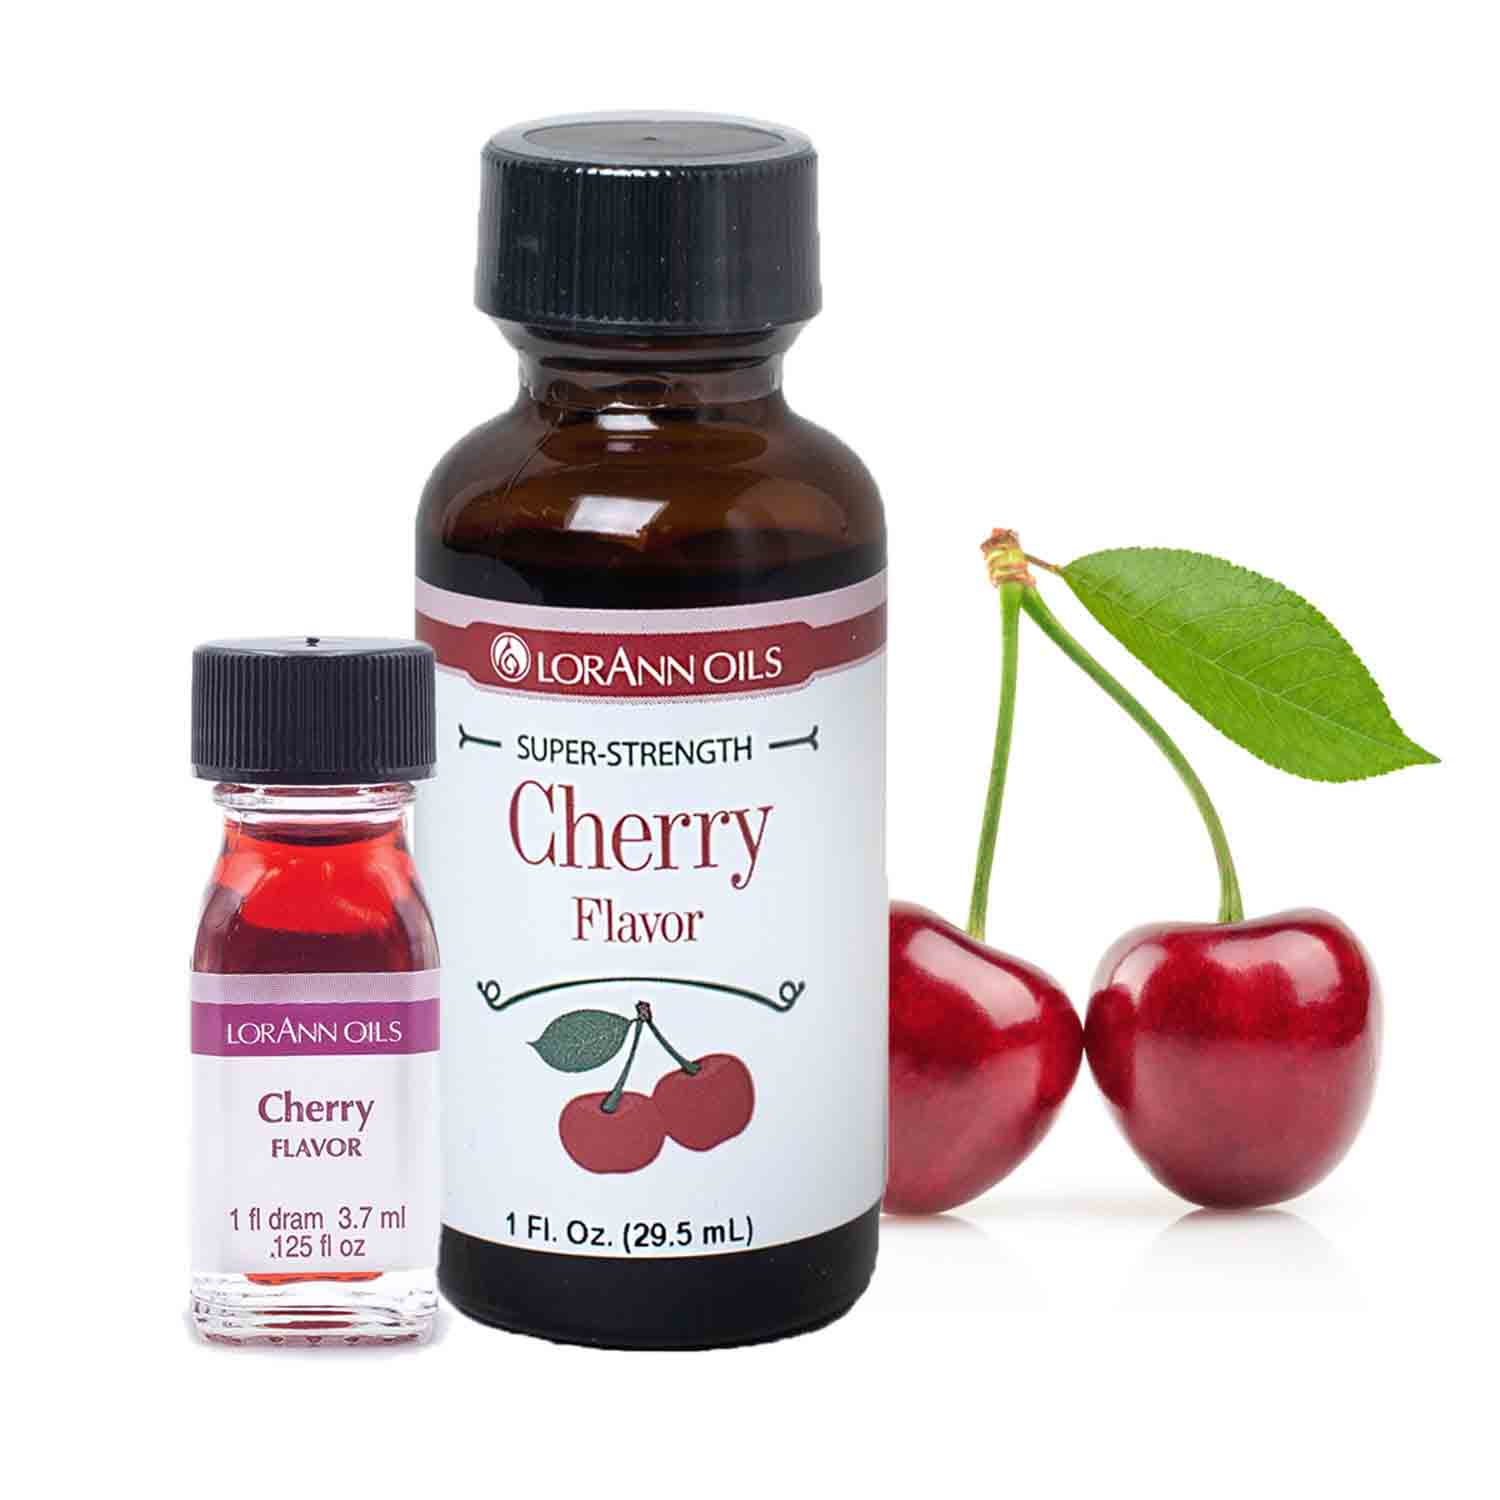 Cherry Super-Strength Flavor